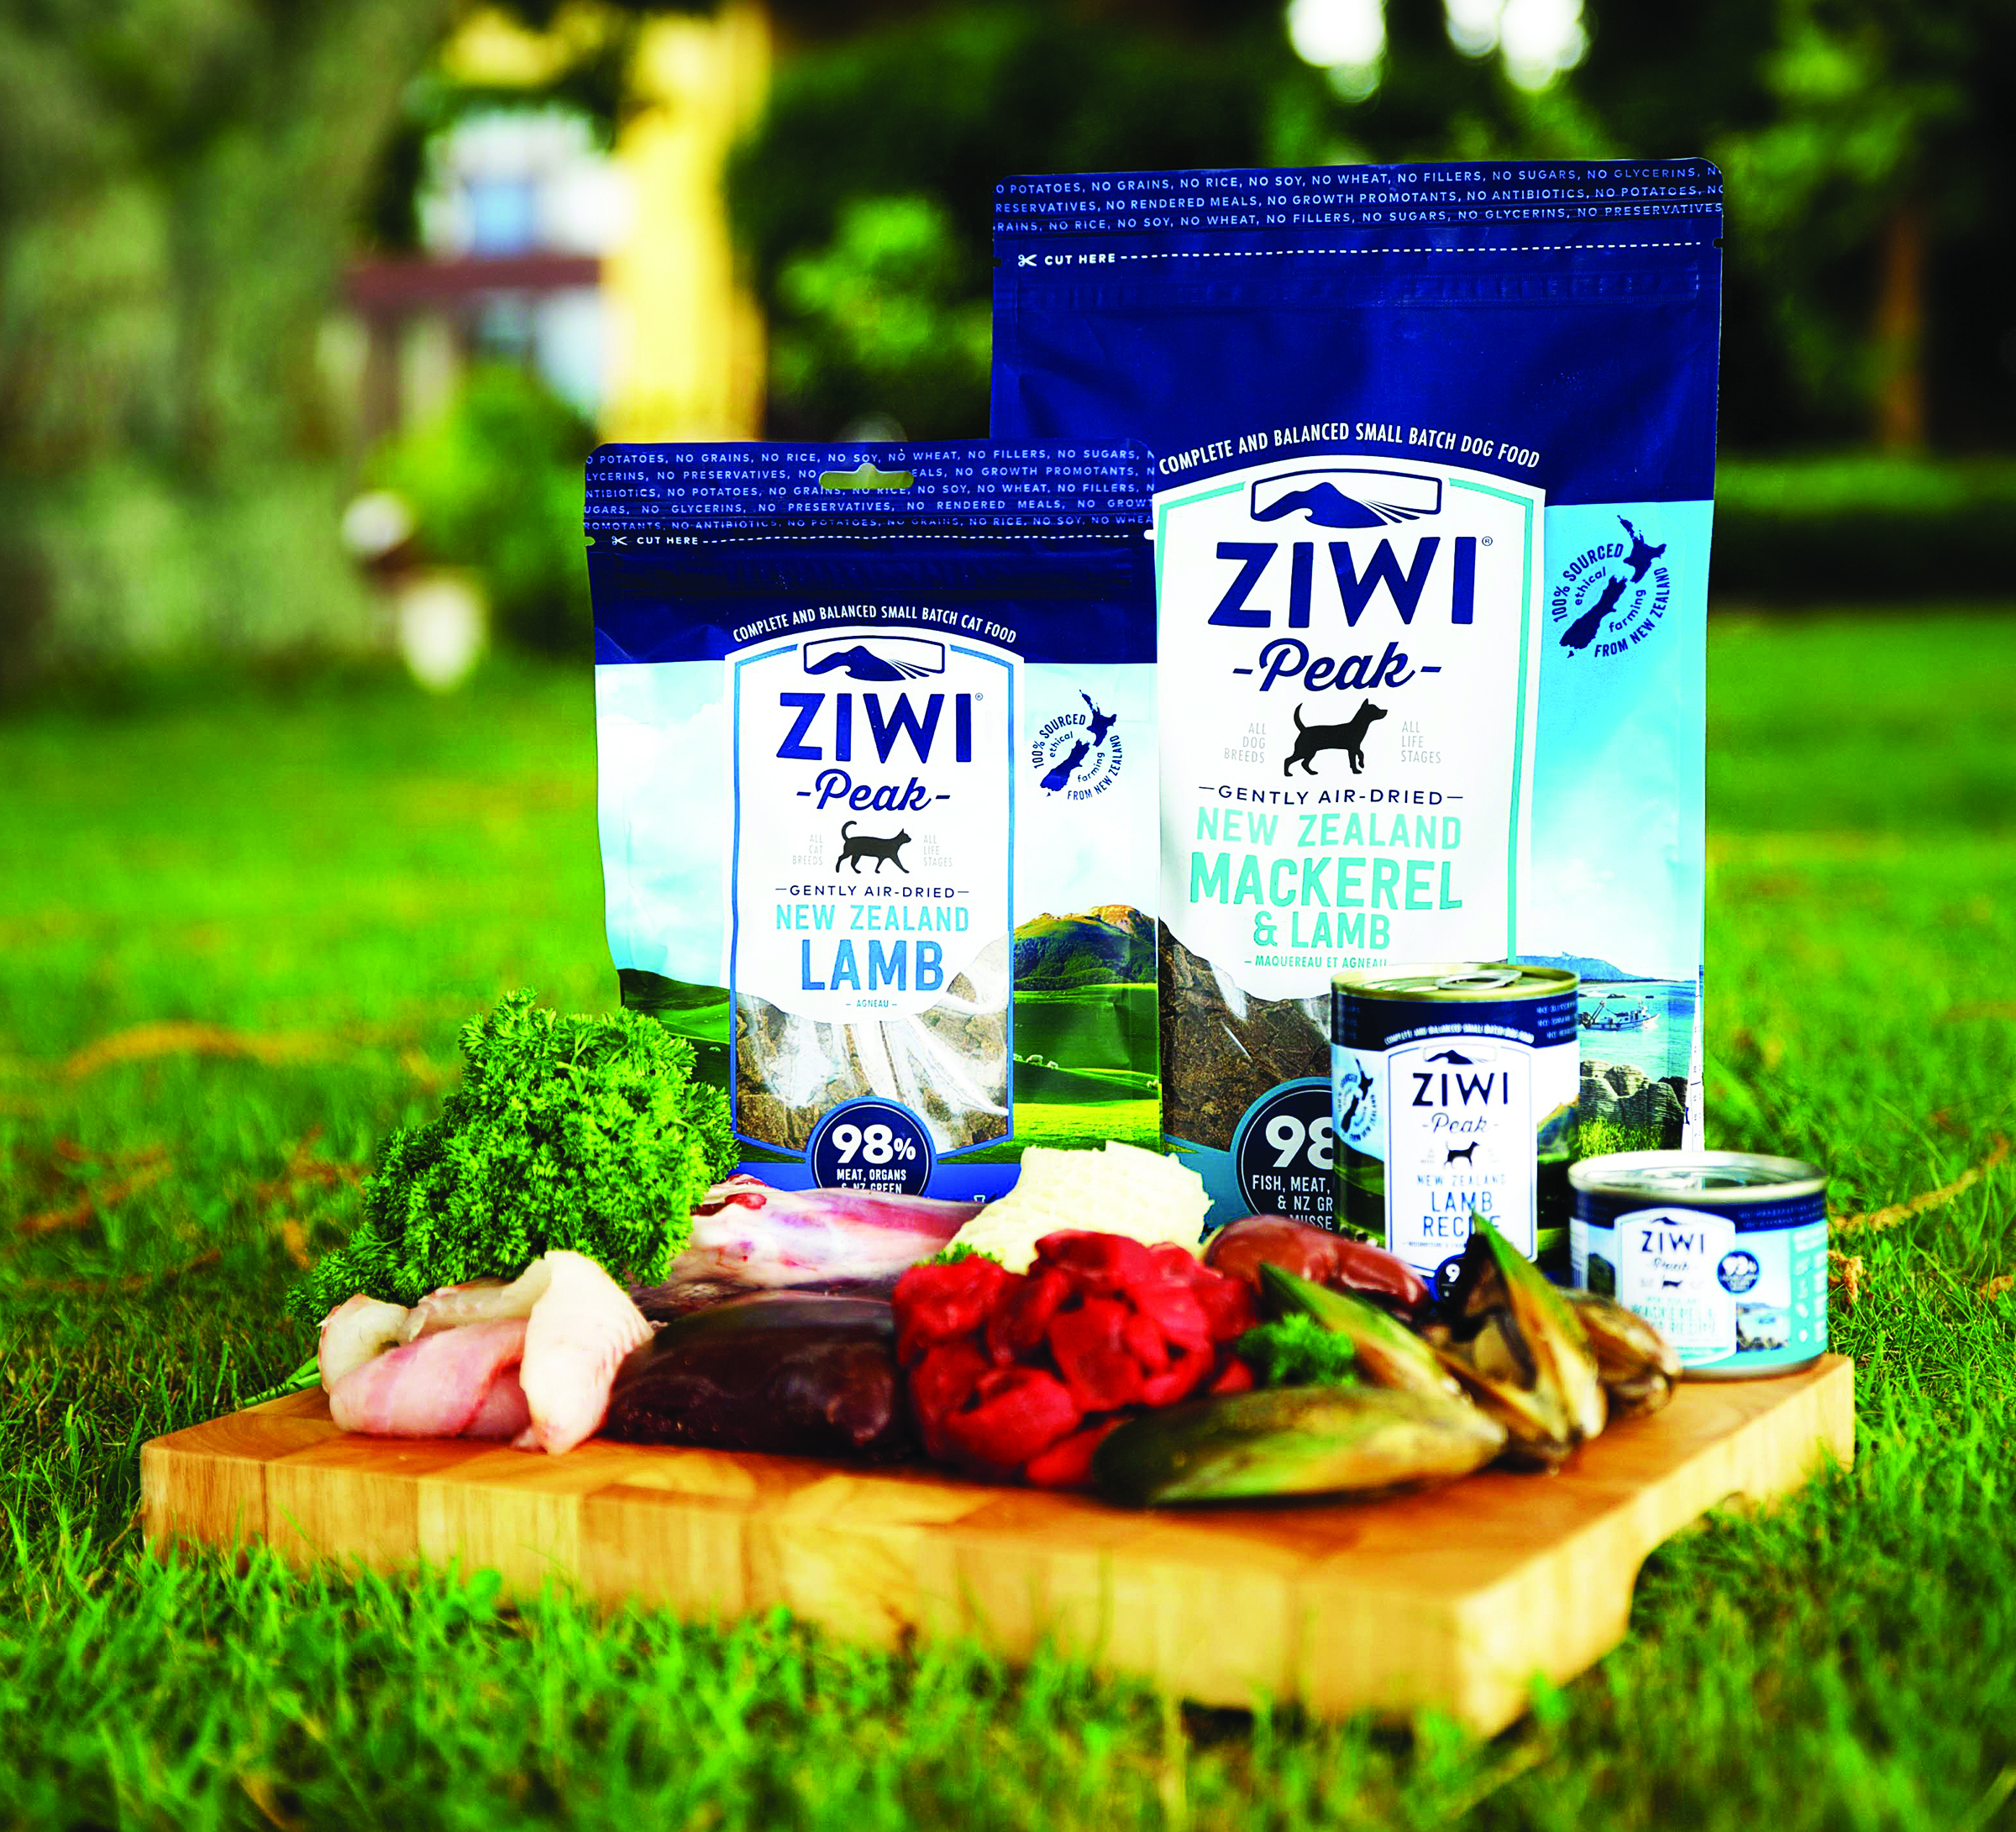 Ziwi Peak cat and dog food products